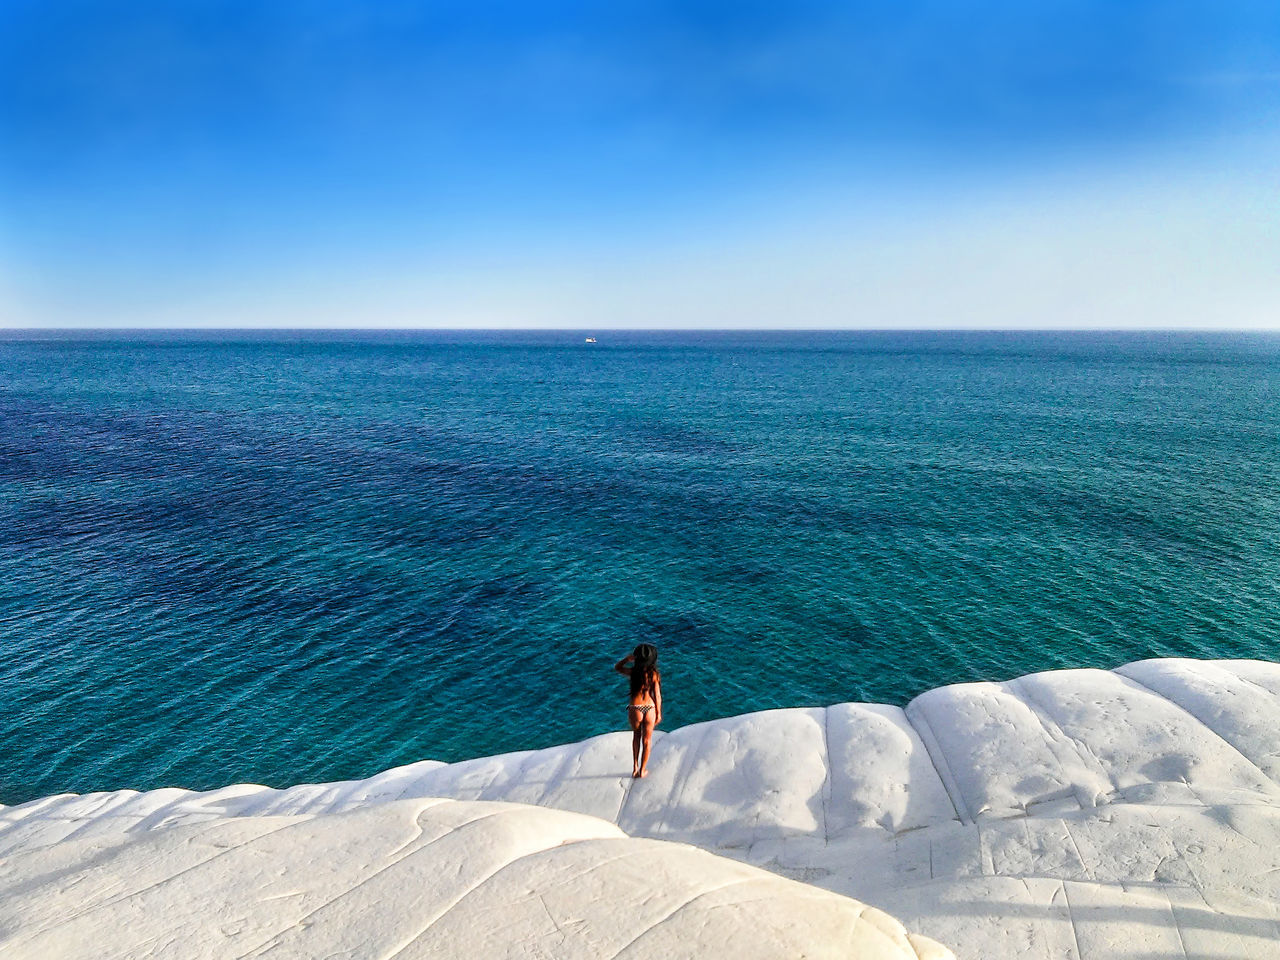 Alone girl standing on the white rock faced to sea Adult Adults Only Beach Beautiful Girl Beauty In Nature Beauty In Nature Blue Day Full Length Girl Girls Horizon Over Water Nature One Person One Woman Only Only Women Outdoors People Sand Scenics Sea Sea And Sky Seascape Sky Waves